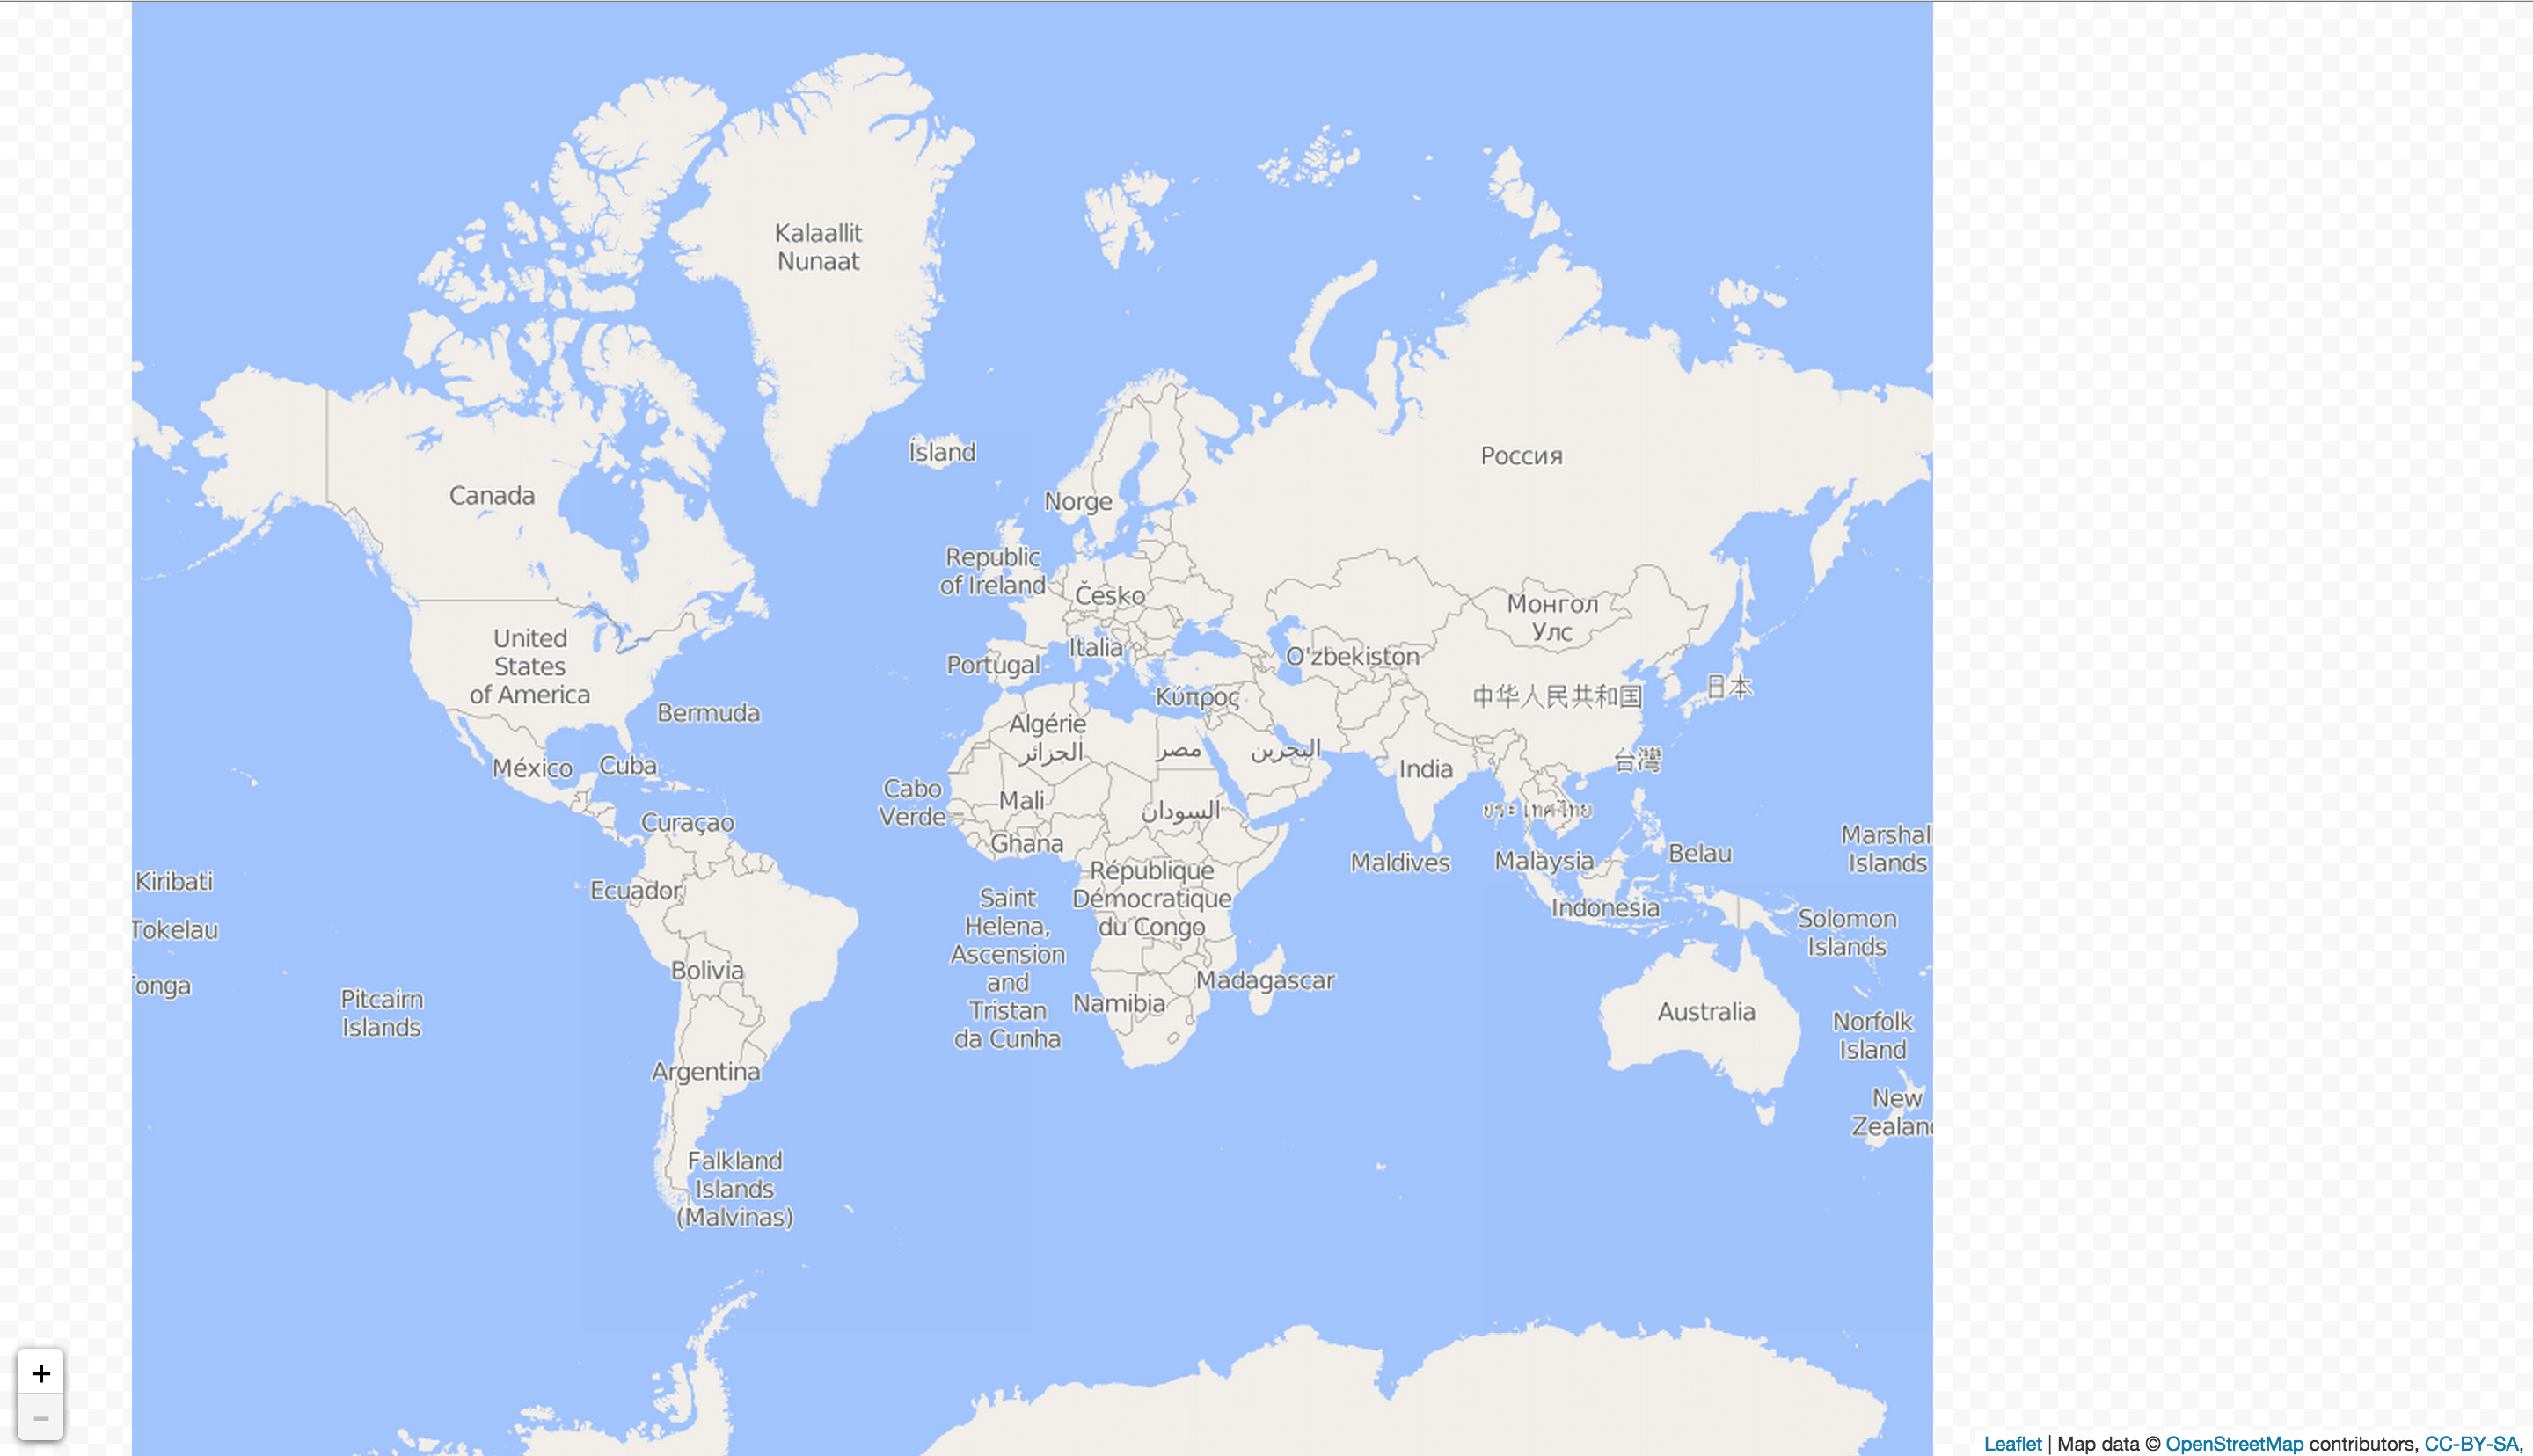 How to fit world map in full screen osm help also tried as nowraptrue it shows single map correclty but the alignment not good in min zoom levels refer image3 gumiabroncs Images